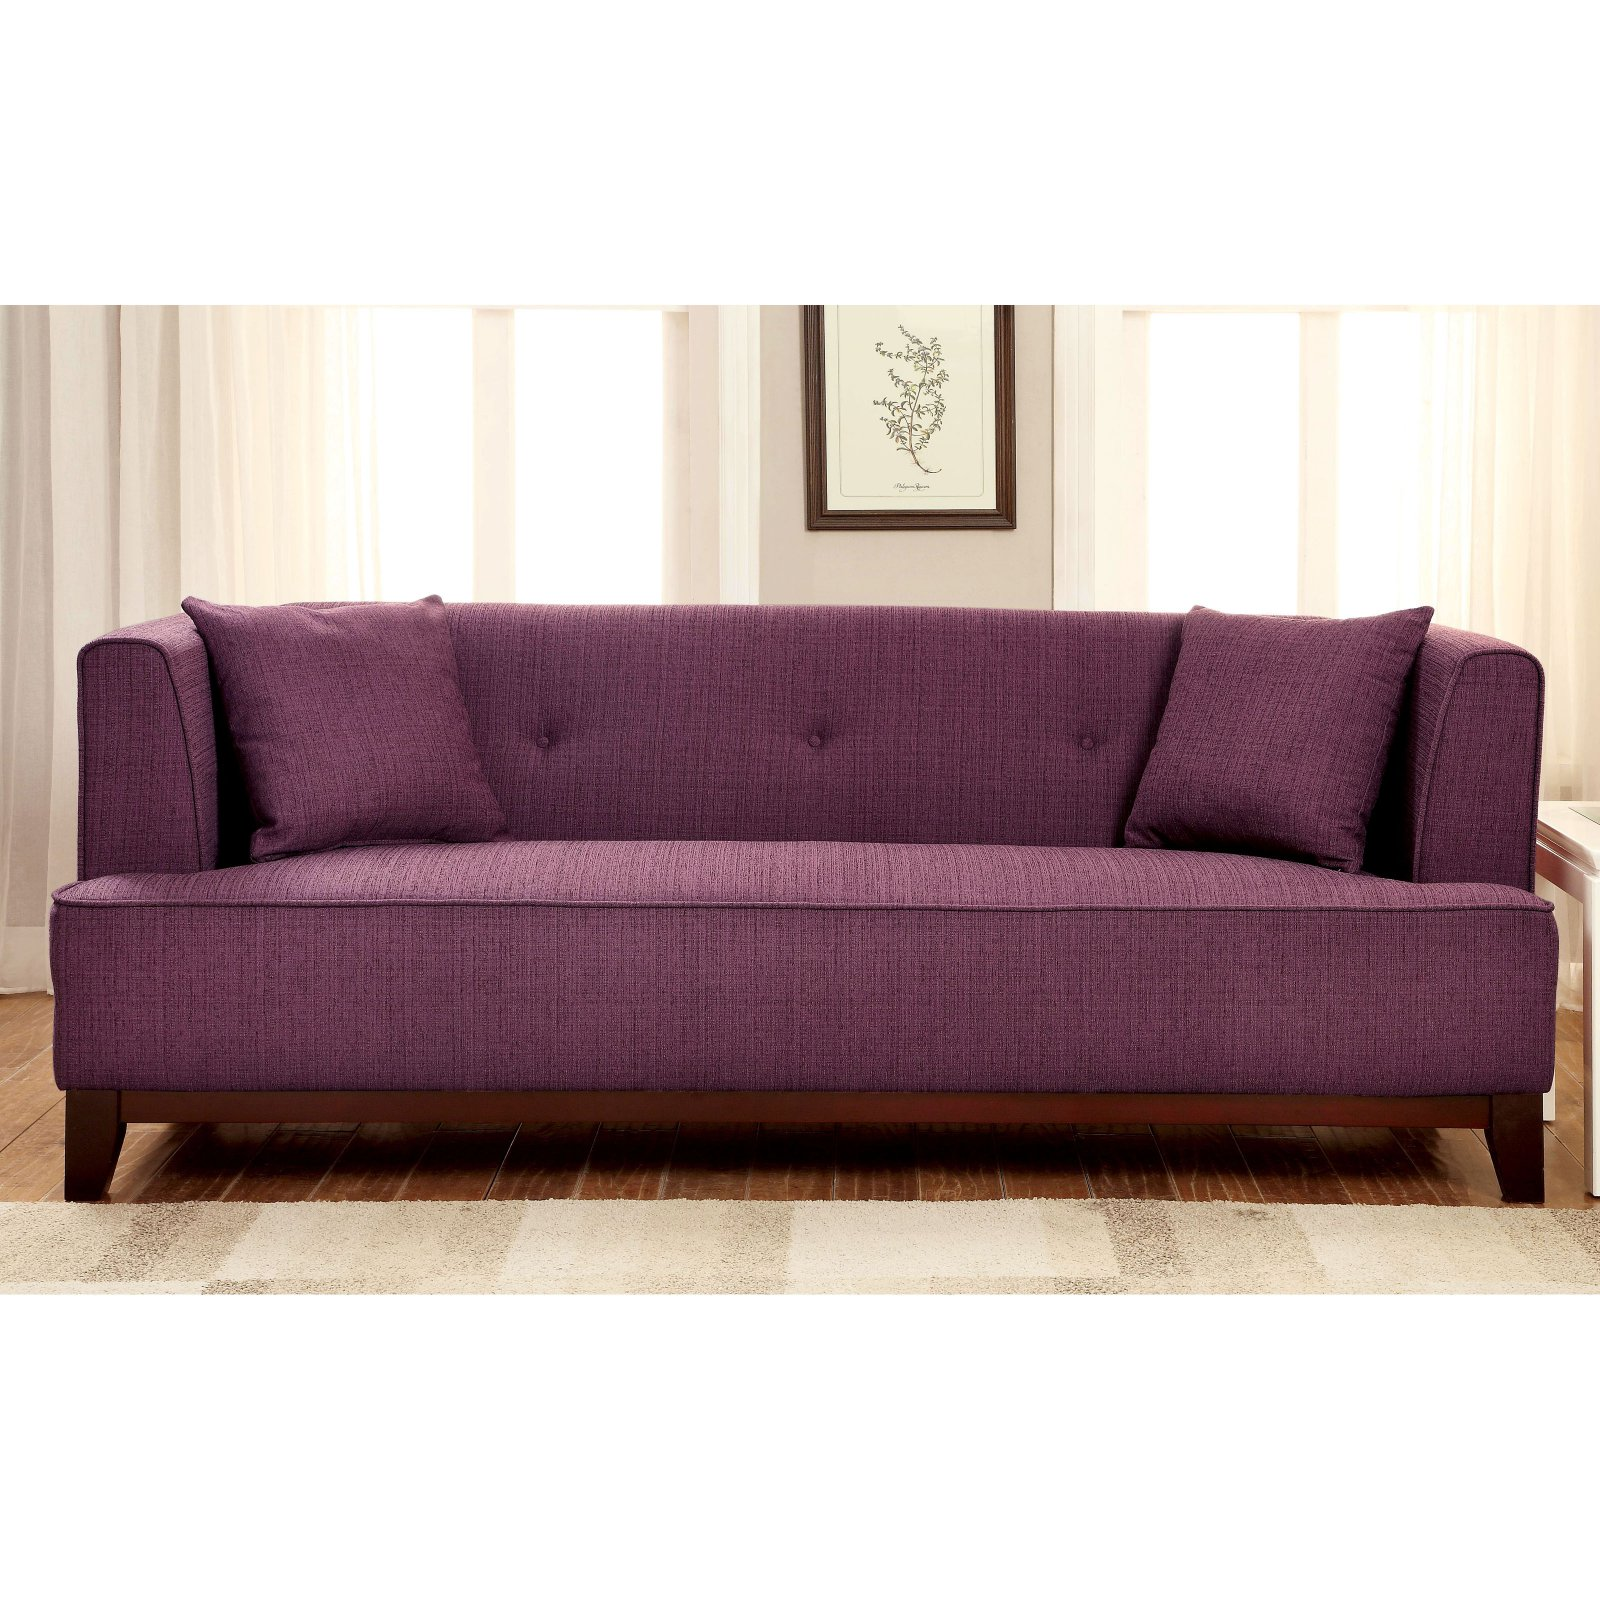 Furniture of America Layfield Sofa